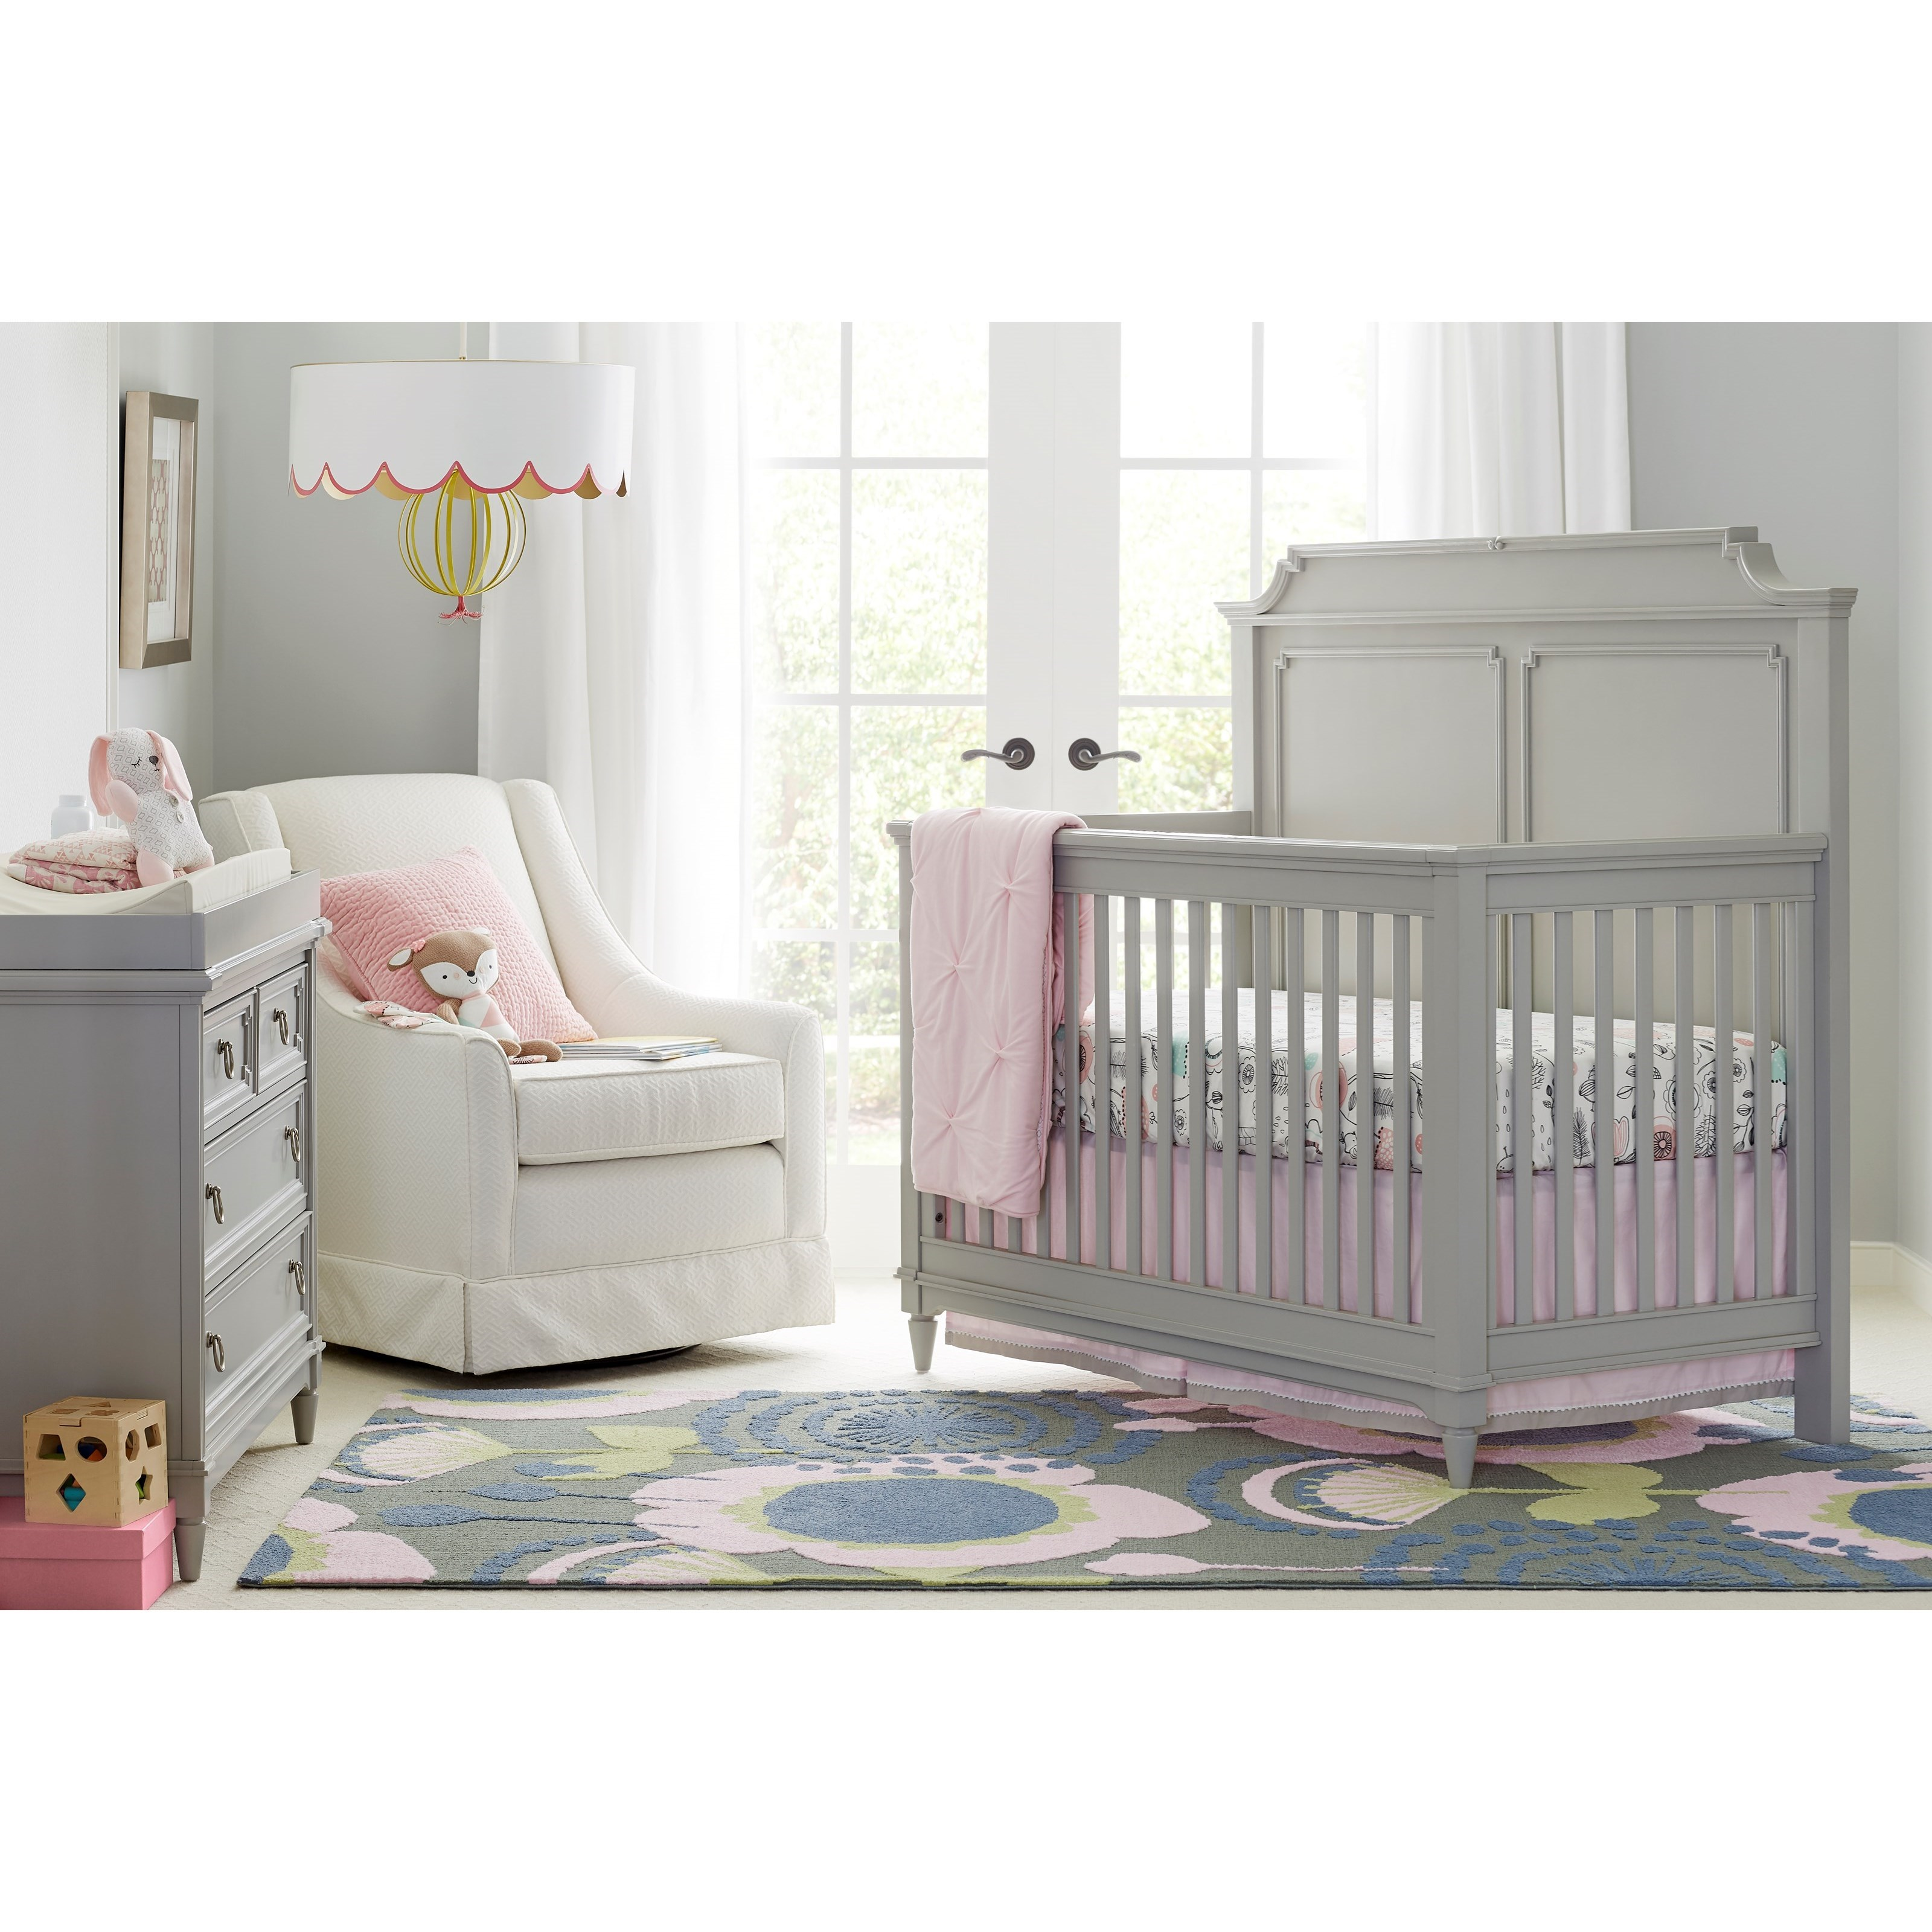 Stone & Leigh Furniture Clementine Court Crib Bedroom Group - Item Number: 537-53 C Bedroom Group 1